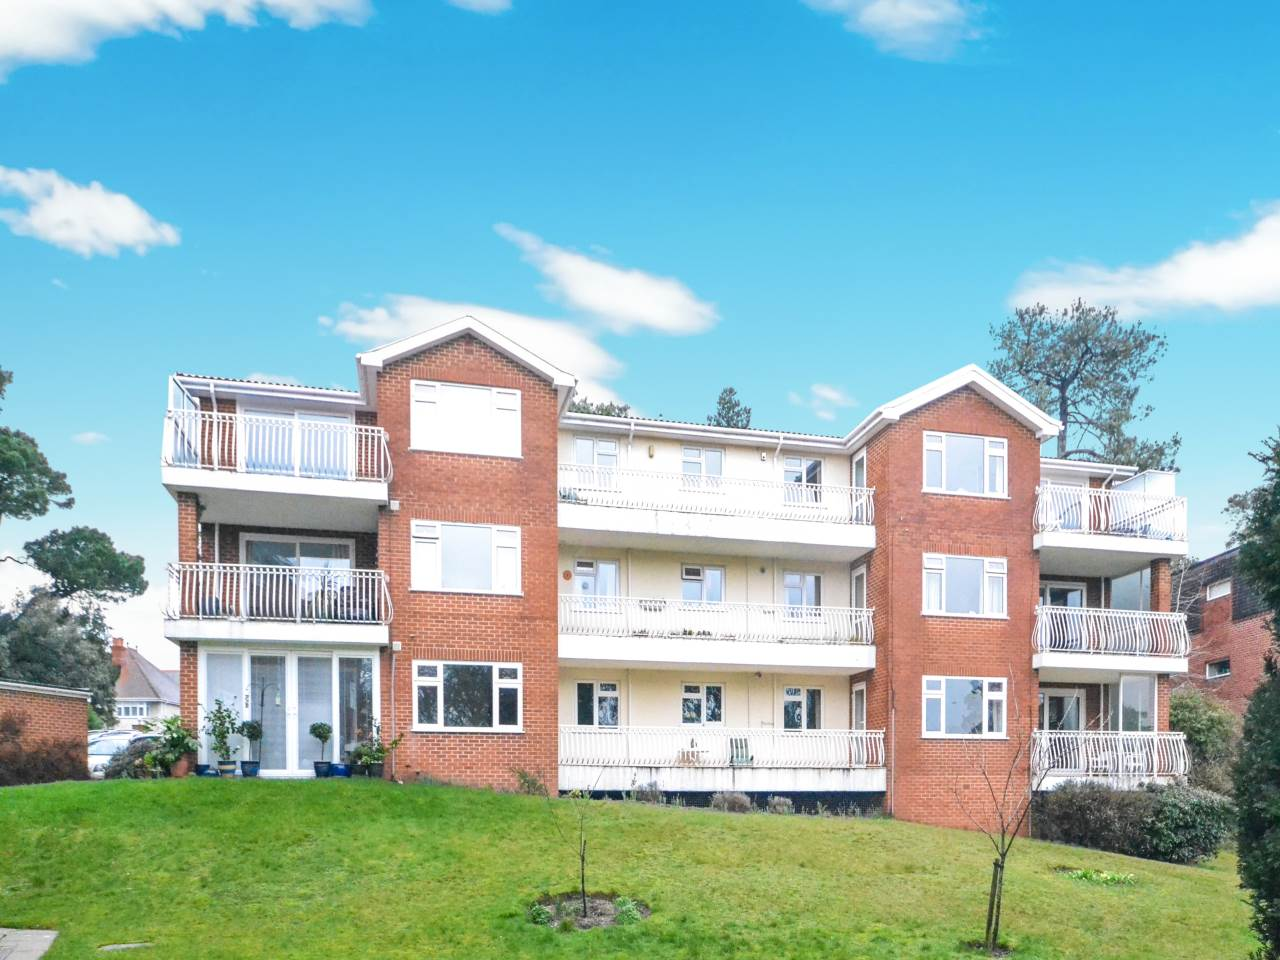 3 bed flat for sale in Fairview Park, Overbury Road, BH14